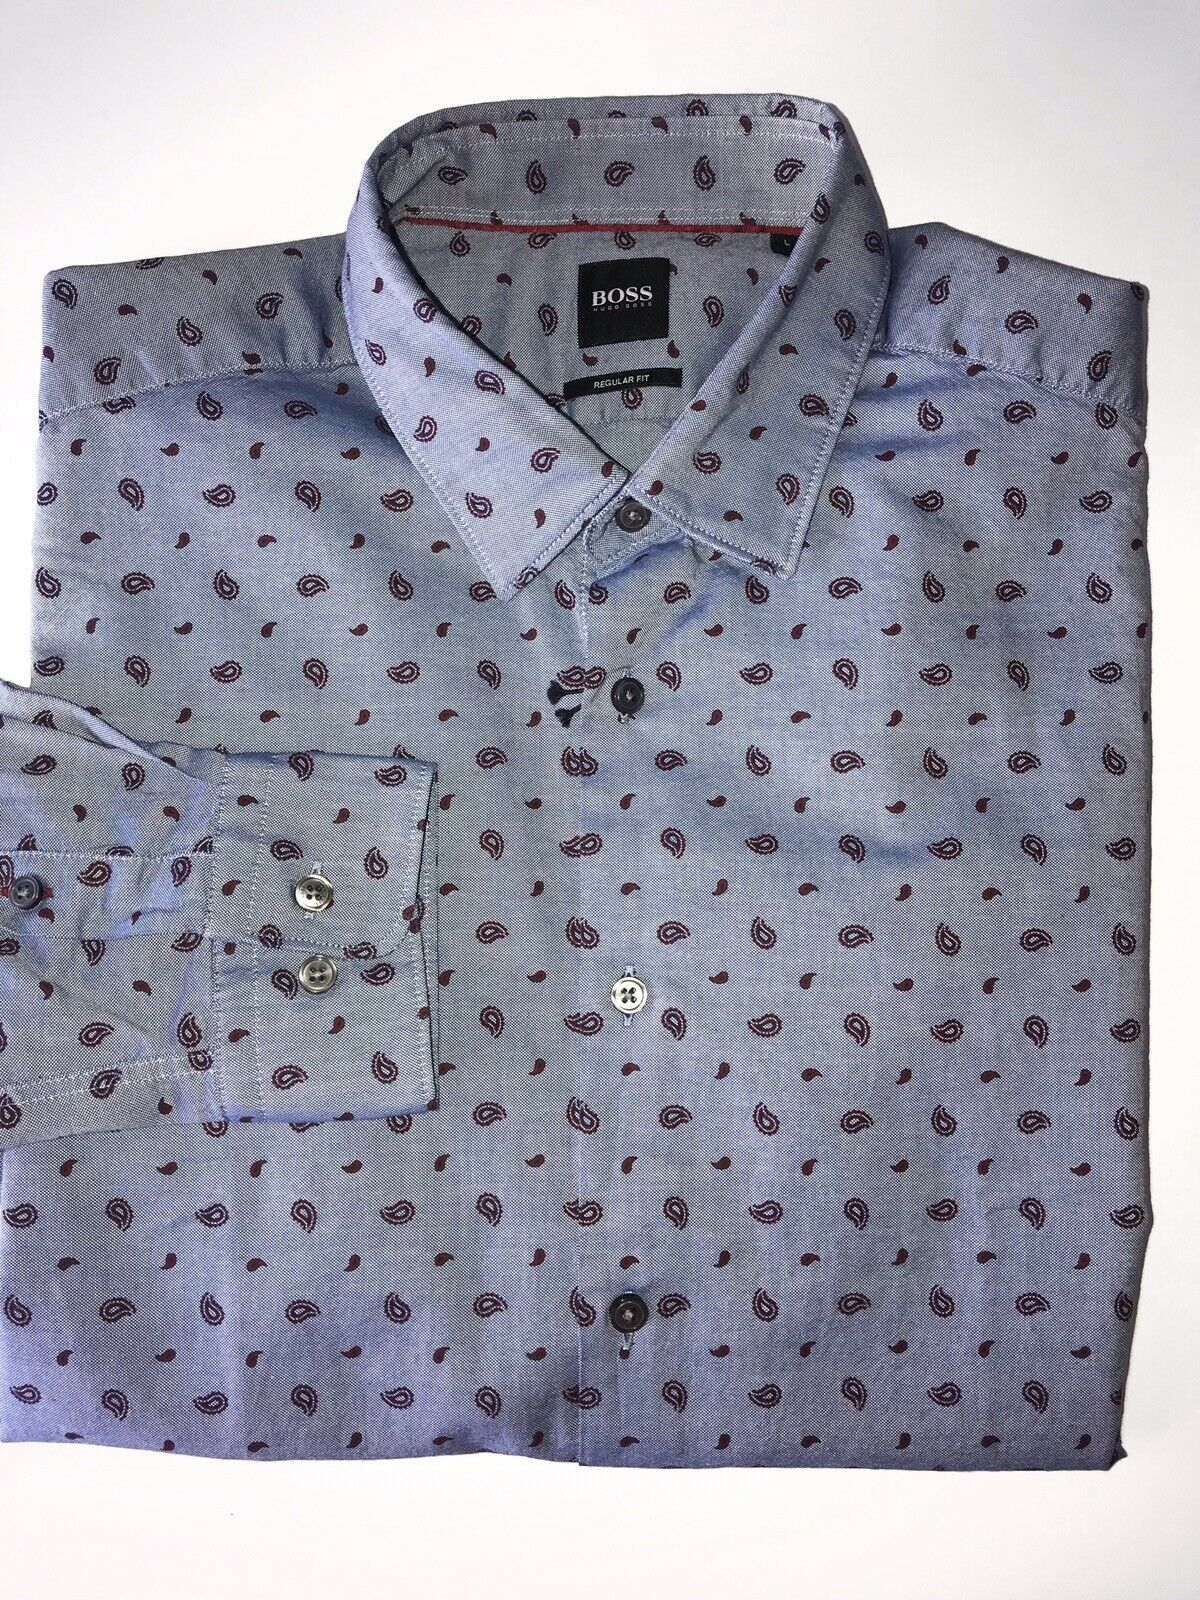 d9870d86 NWT Hugo Boss Lucas Mens Regular Fit Cotton bluee Dress Shirt Size L ...